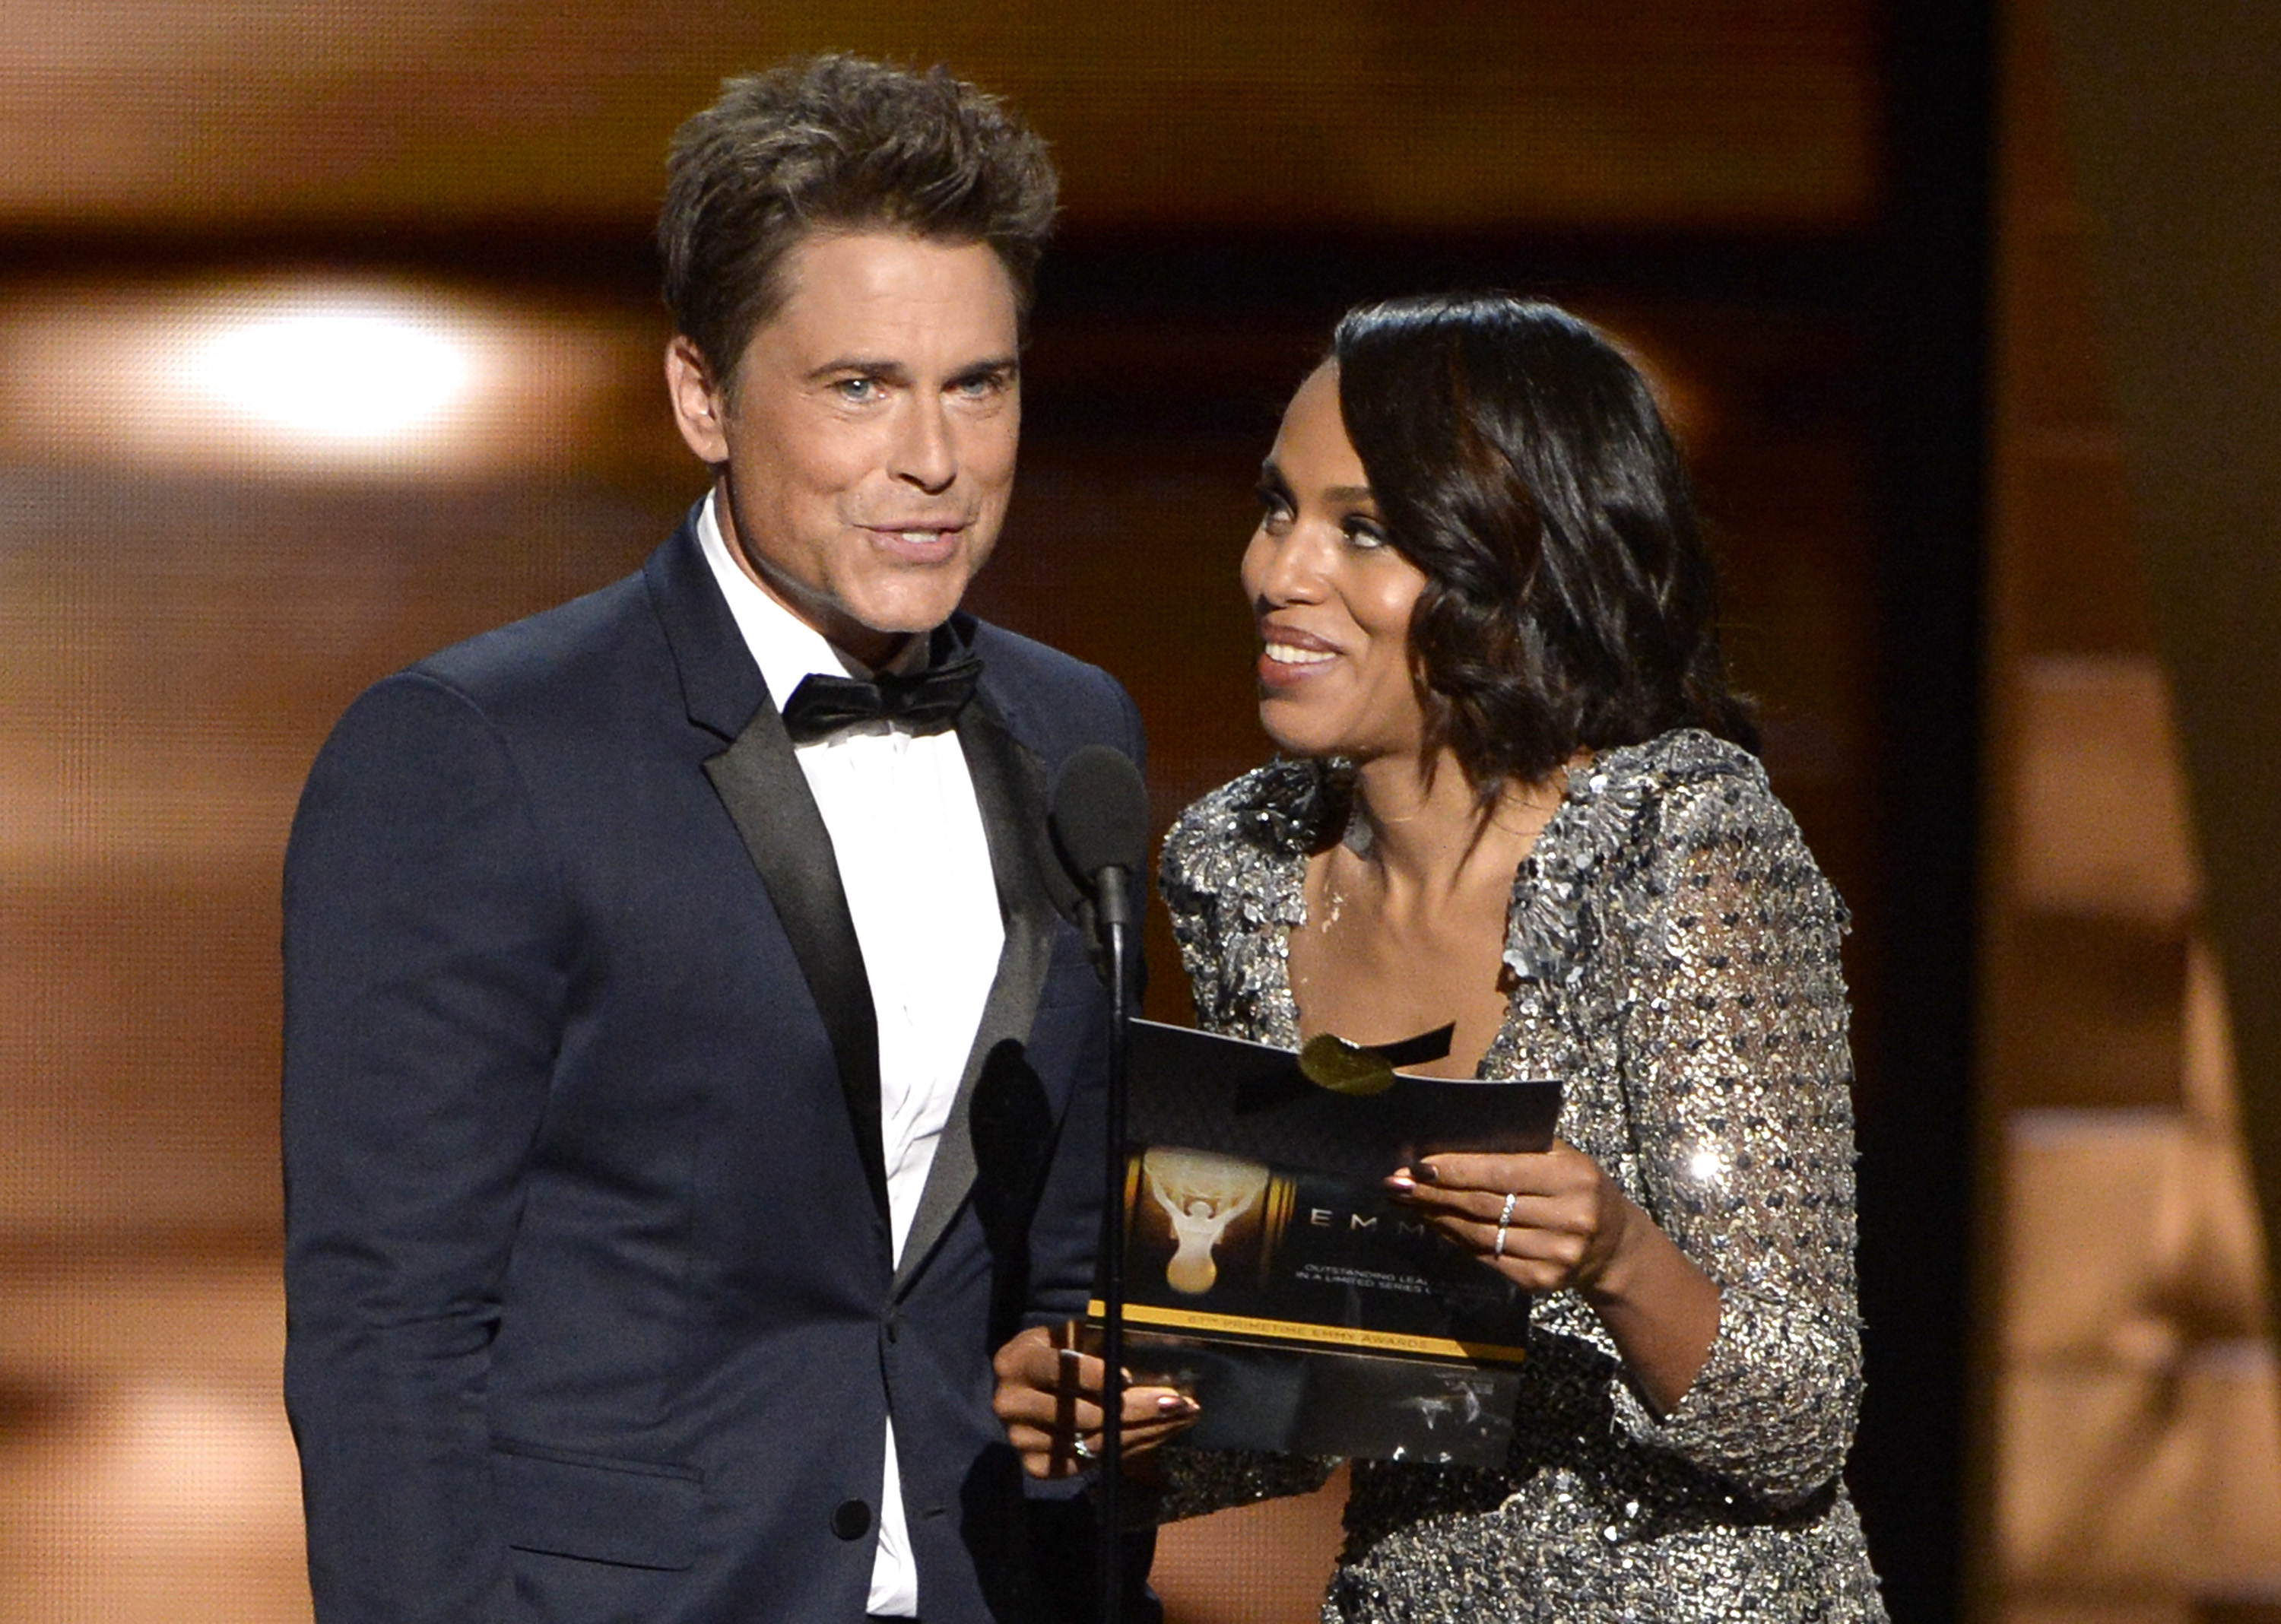 Rob Lowe, left, and Kerry Washington present the award for outstanding lead actress in a limited series or a movie at the 67th Primetime Emmy Awards on Sunday, Sept. 20, 2015, at the Microsoft Theater in Los Angeles. (Photo by Phil McCarten/Invision for the Television Academy/AP Images)